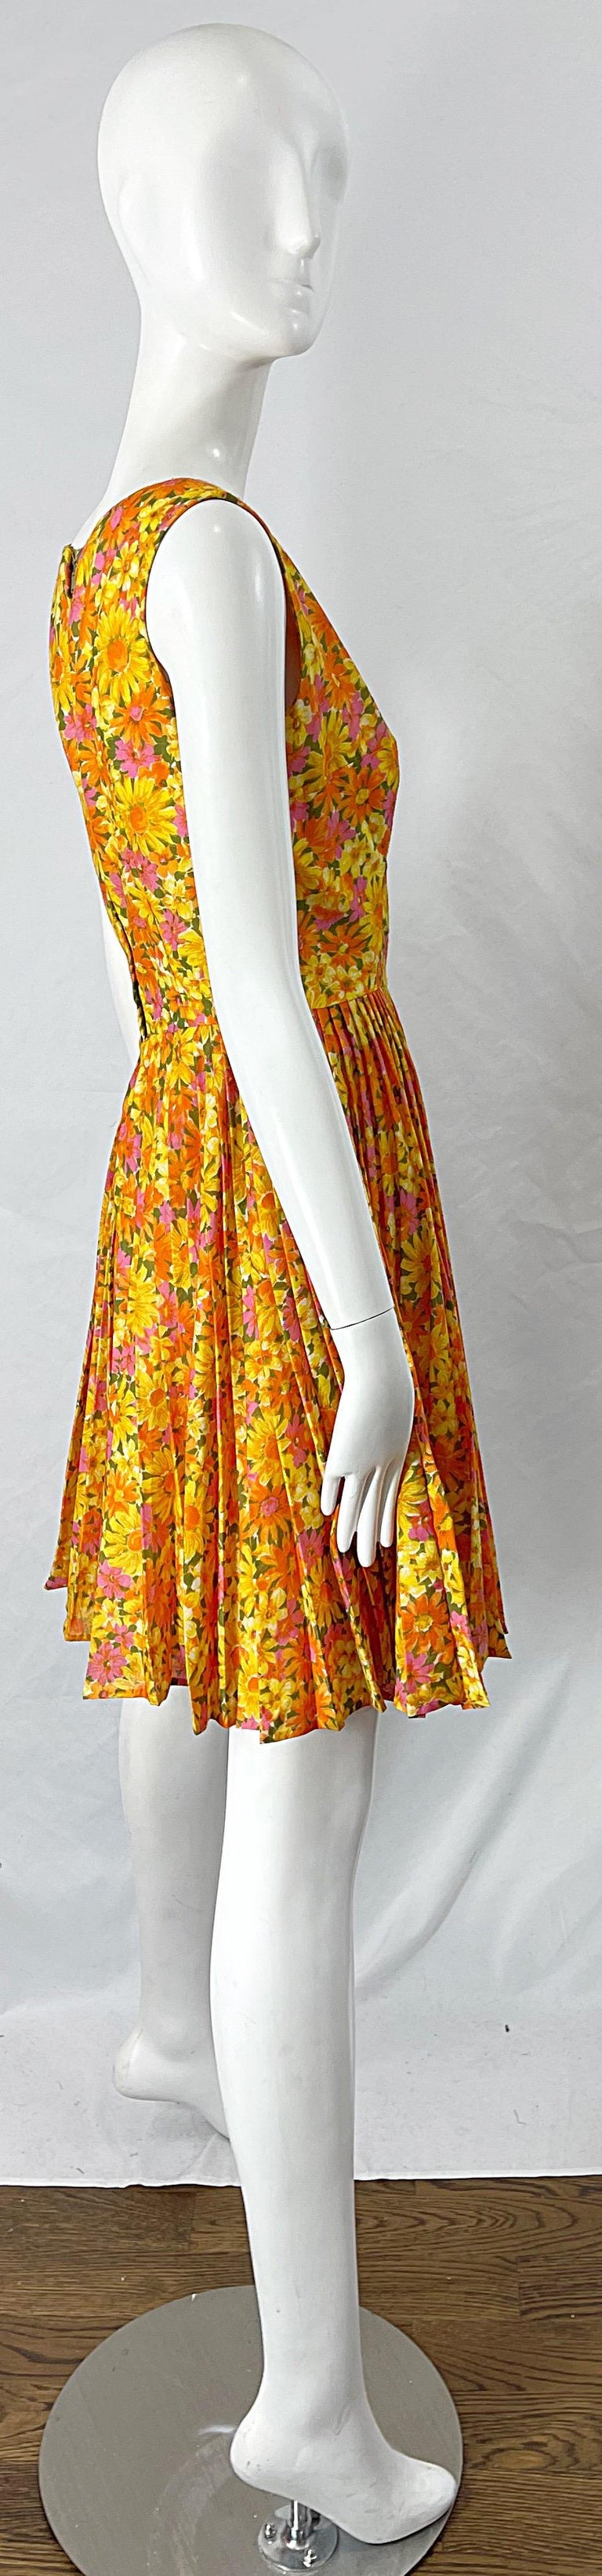 1950s Suzy Perette Yellow Pink Orange Daisy Print Cotton Vintage 50s Dress In Excellent Condition For Sale In Chicago, IL